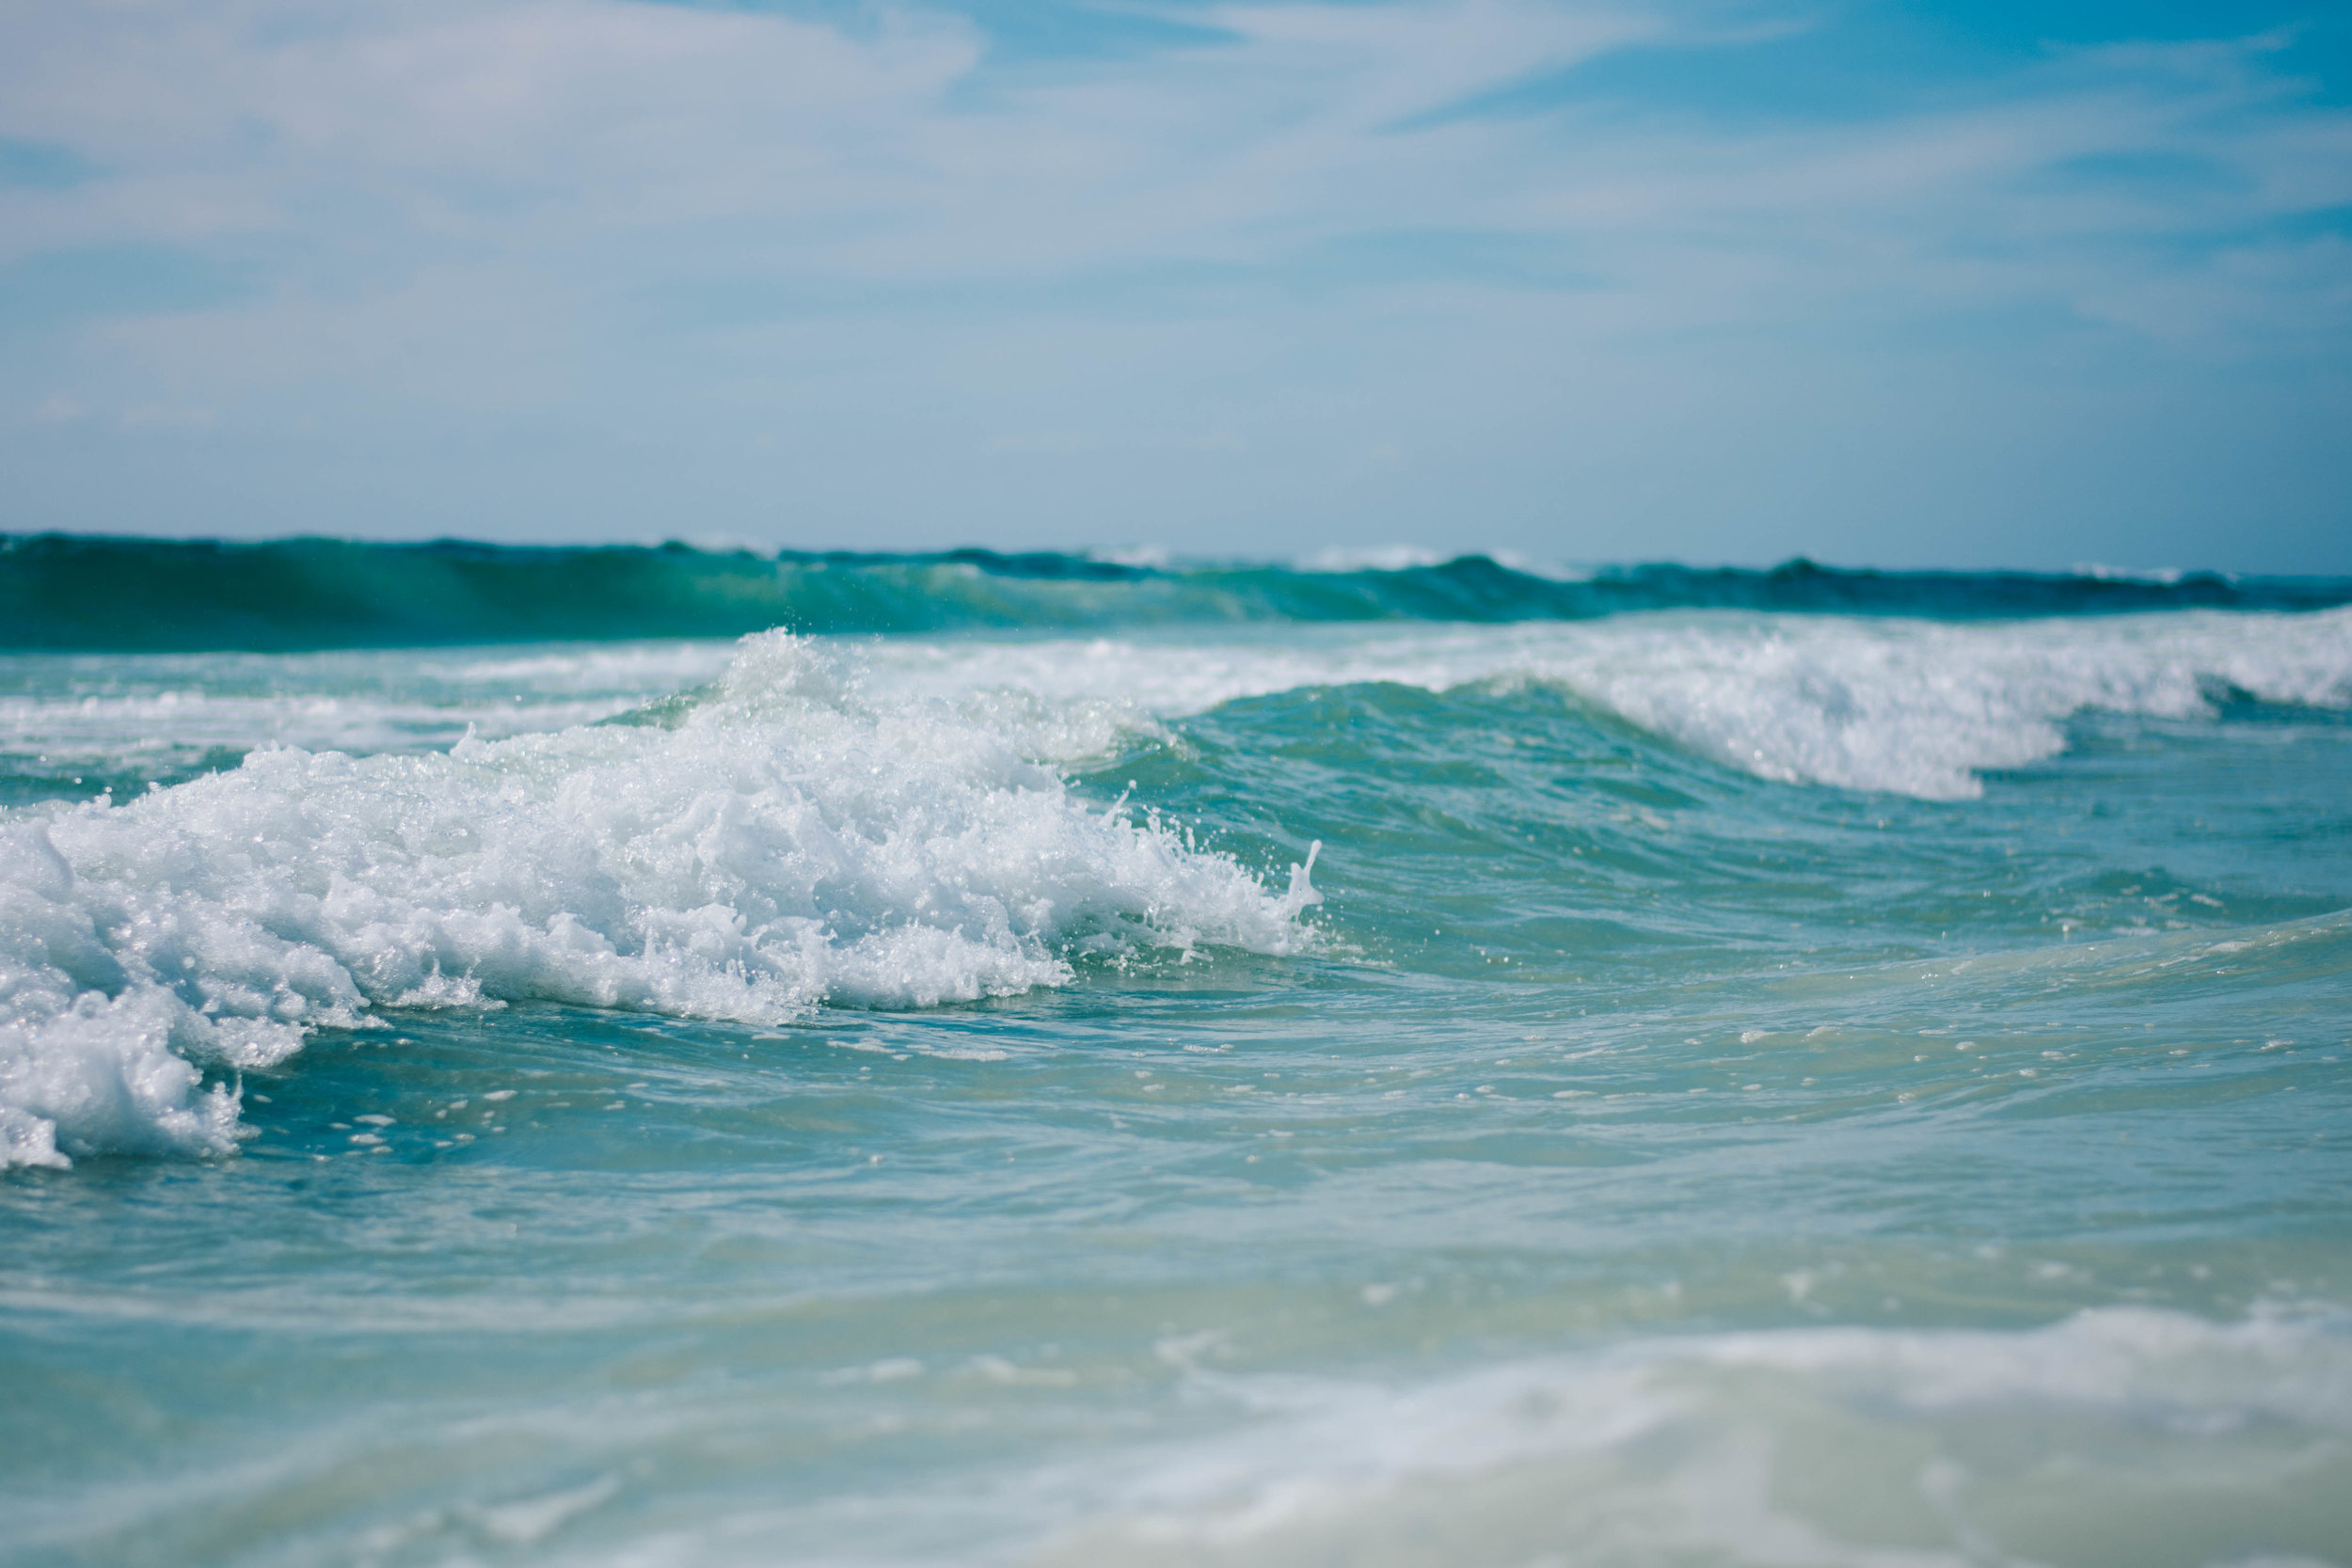 The Wave | Niceville, Floriday | October 2016